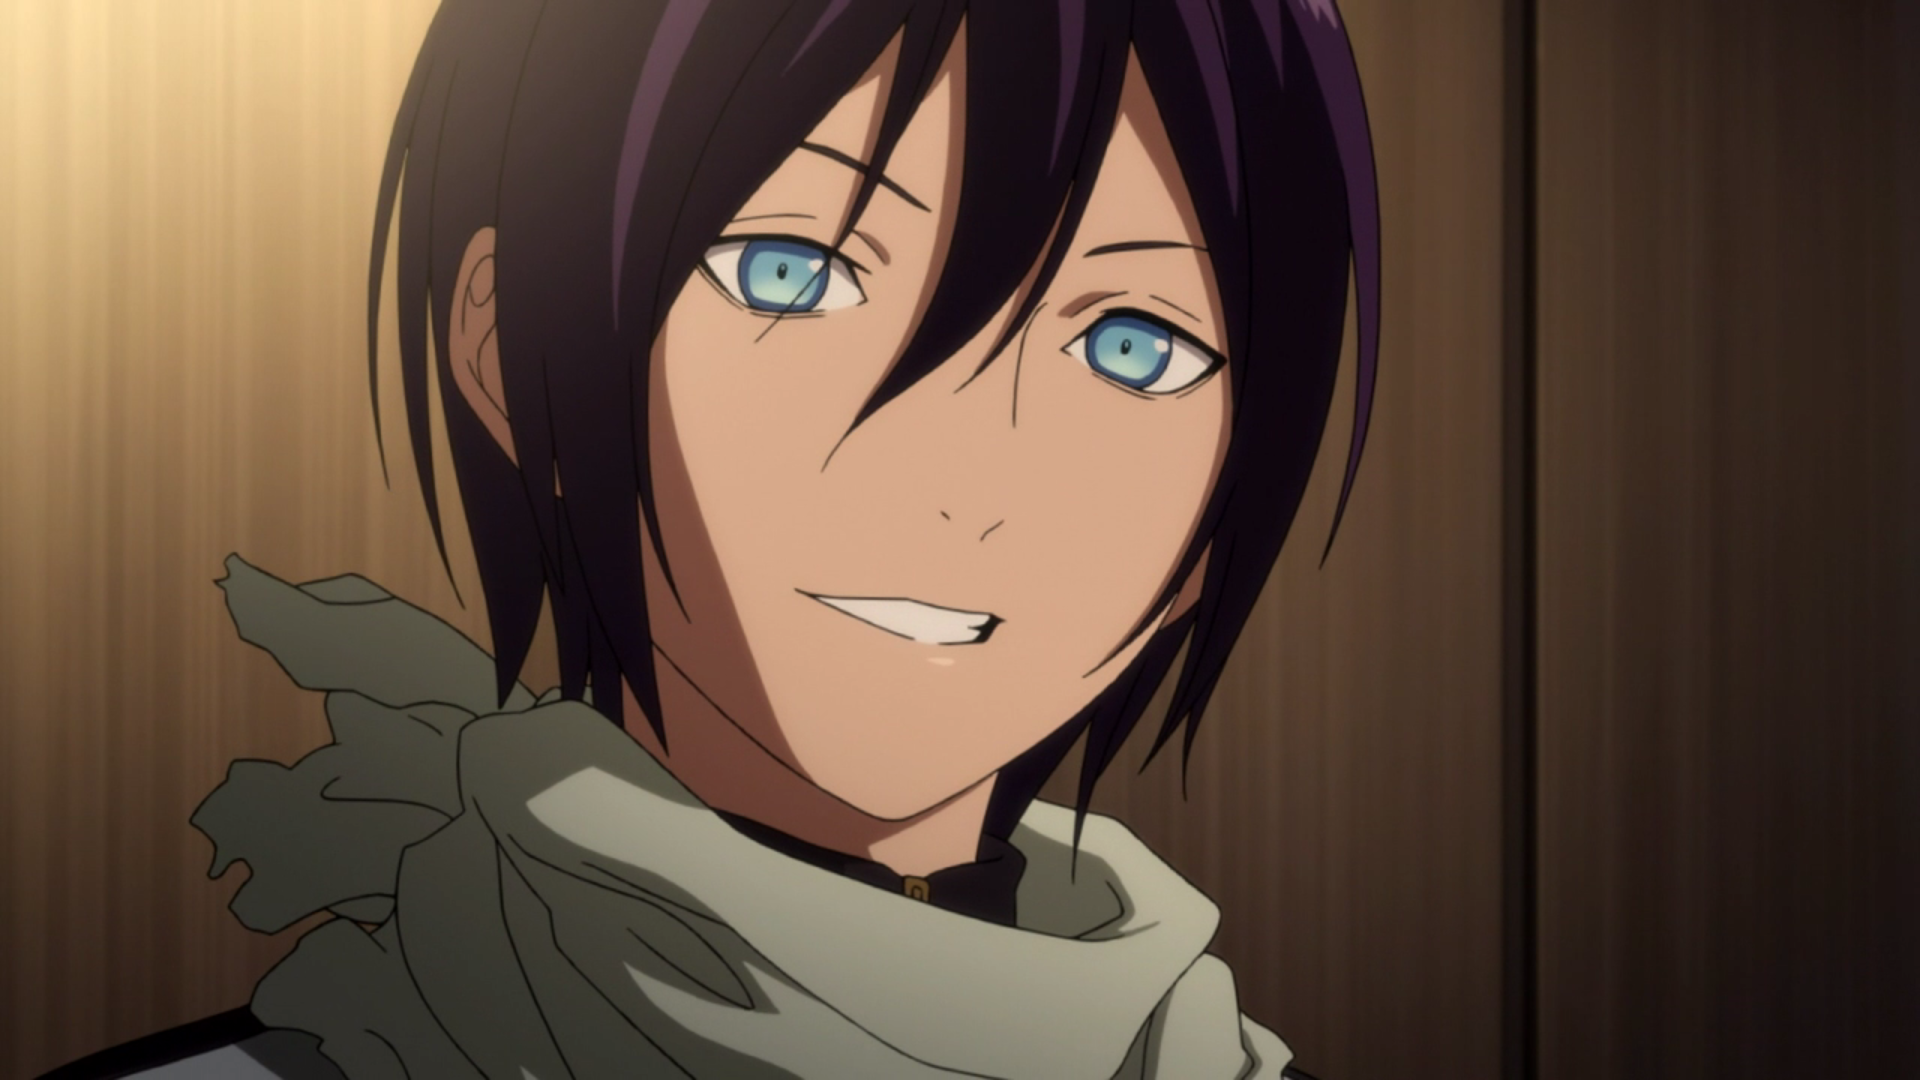 how tall is noragami yato